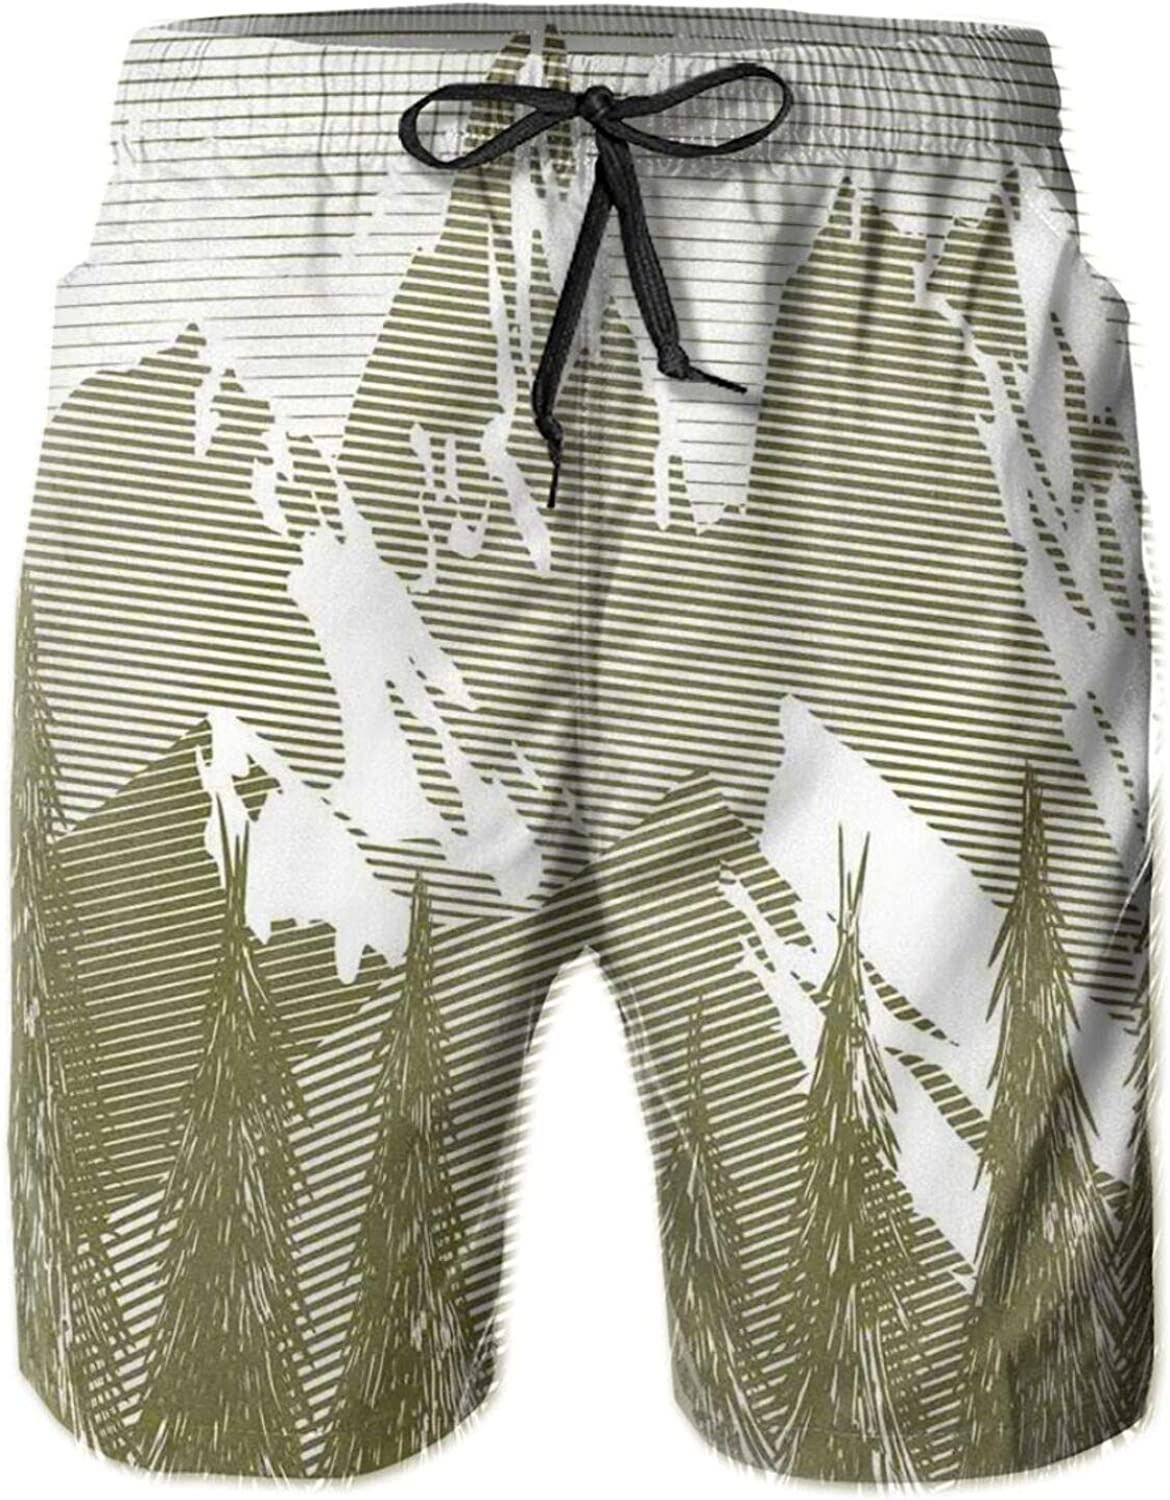 MUJAQ Woodcut Style Landscape Image with Trees and Mountain at The Background Mens Swim Shorts Casual Workout Short Pants Drawstring Beach Shorts,XL